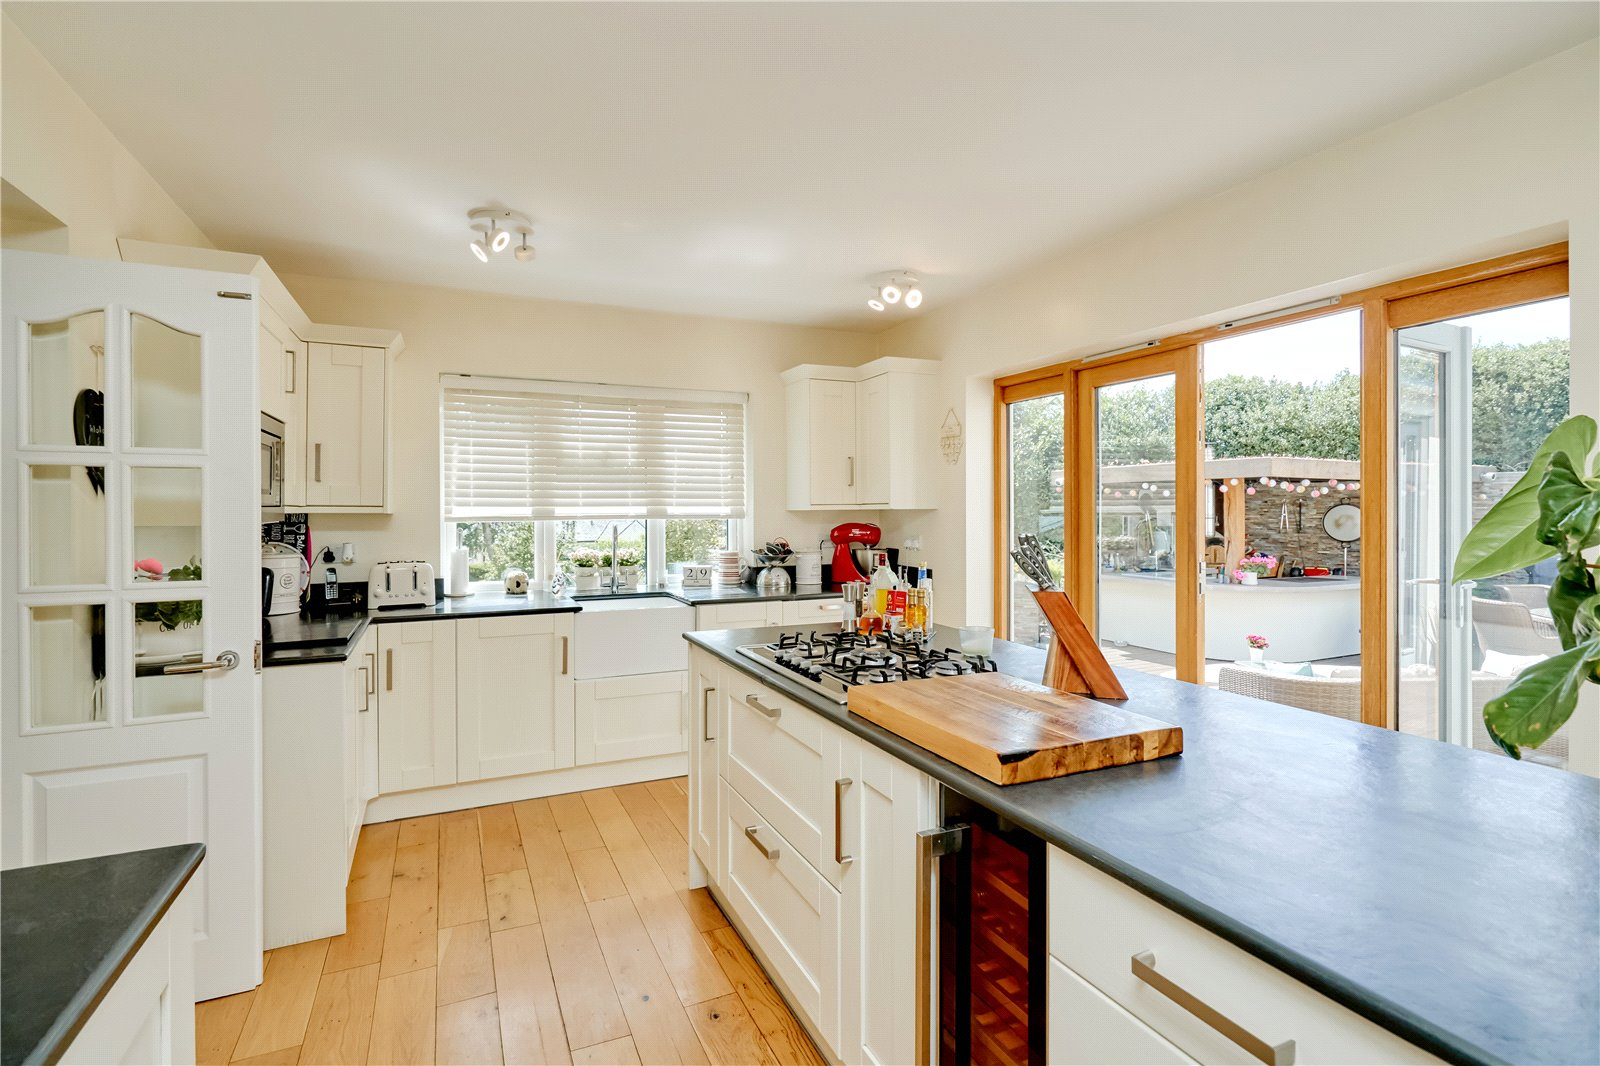 4 bed house for sale in Welwyn, AL6 0QG  - Property Image 1